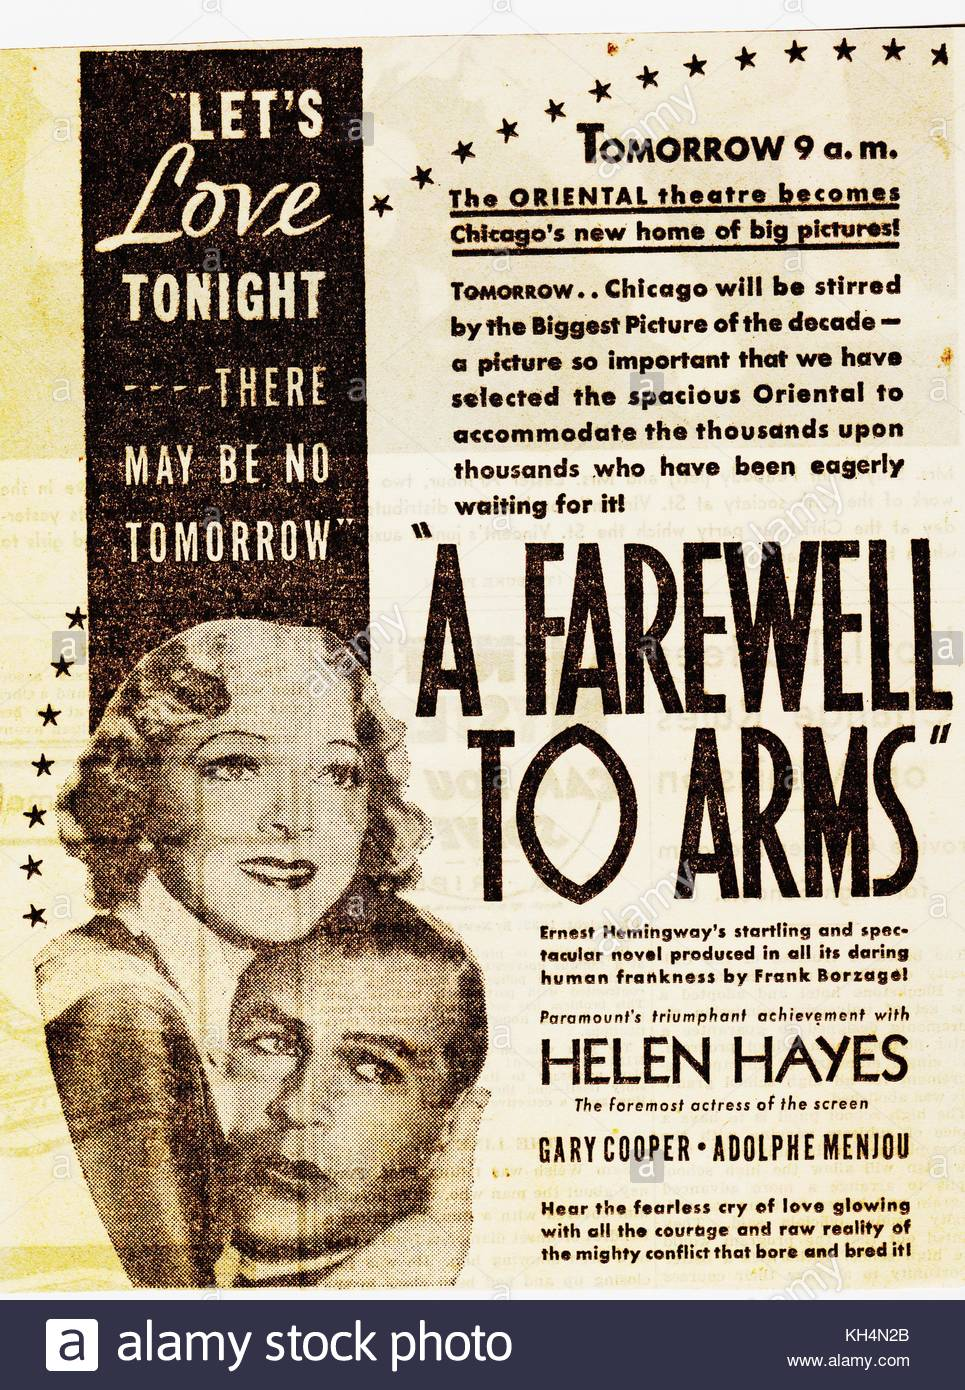 a book review of a farewell to arms a war novel by ernest hemingway A farewell to arms review - hemingway novel becomes multimedia theatre show 4 / 5 stars 4 out of 5 stars  first world war ernest hemingway reviews share on facebook.